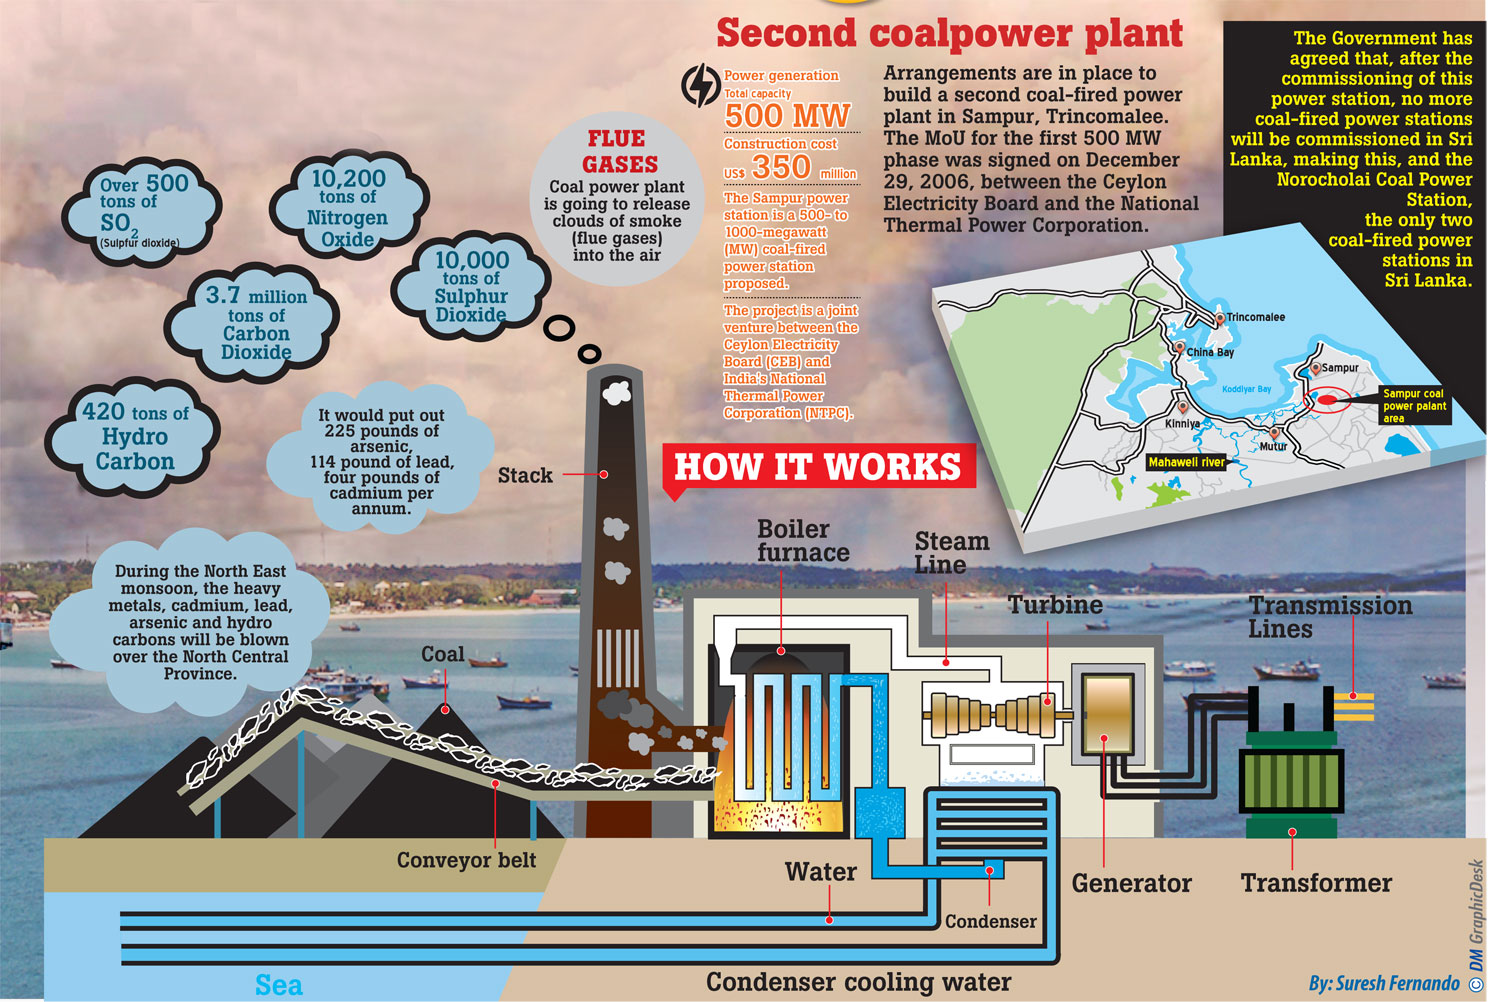 Sampur Coal Power Plant An Environmental Doom And Gloom Daily 500 Mw Diagram Sri Lanka Will Be Faced With Severe Degradation Health Issues In Future